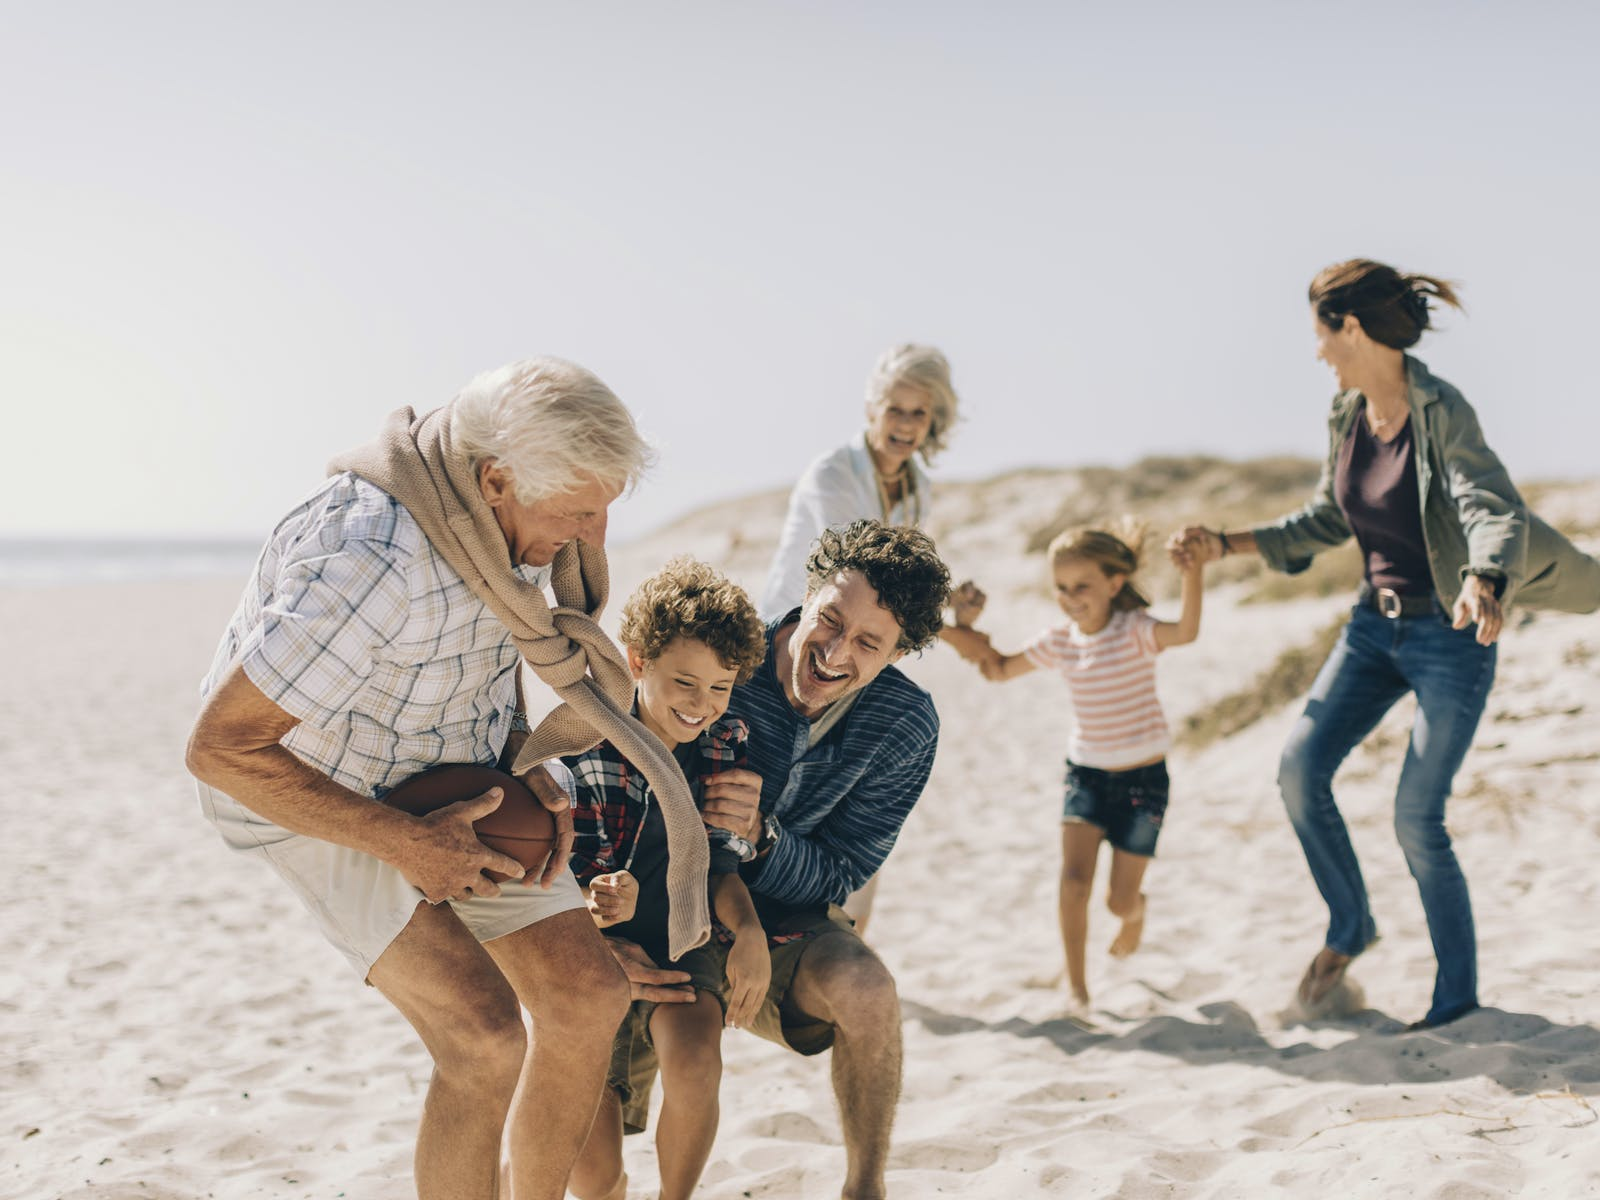 Multi-generational family having fun at the beach